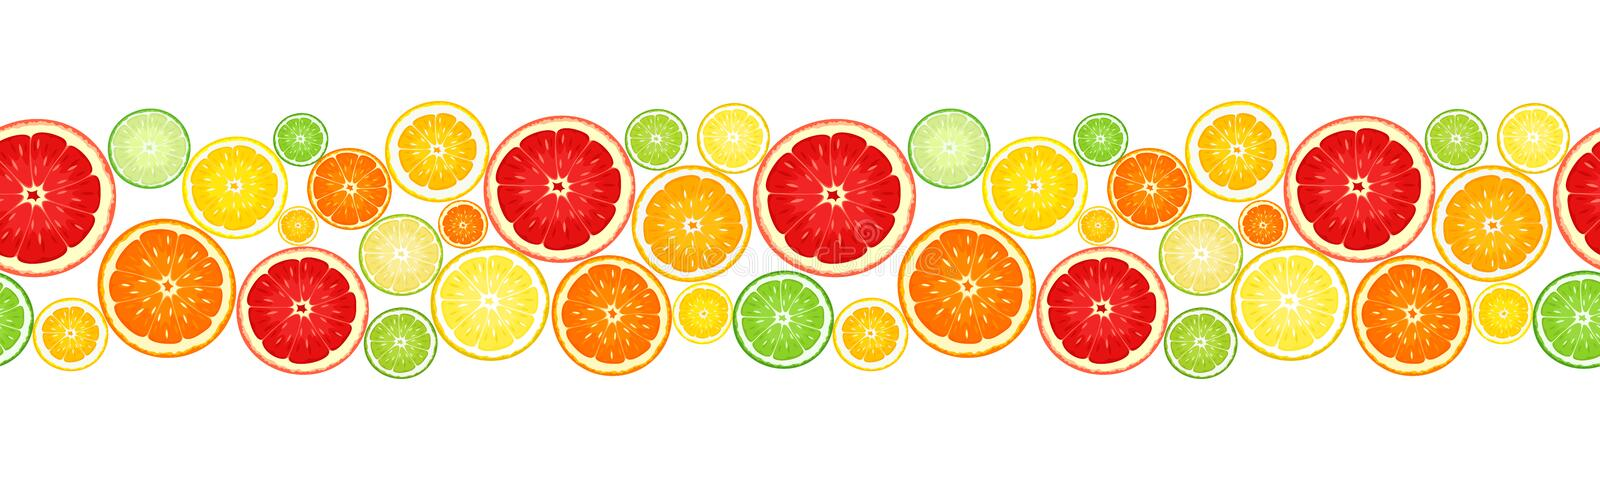 Horizontal seamless background with citrus fruits. Vector illustration. Vector horizontal seamless background with slices of various citrus fruits on white royalty free illustration